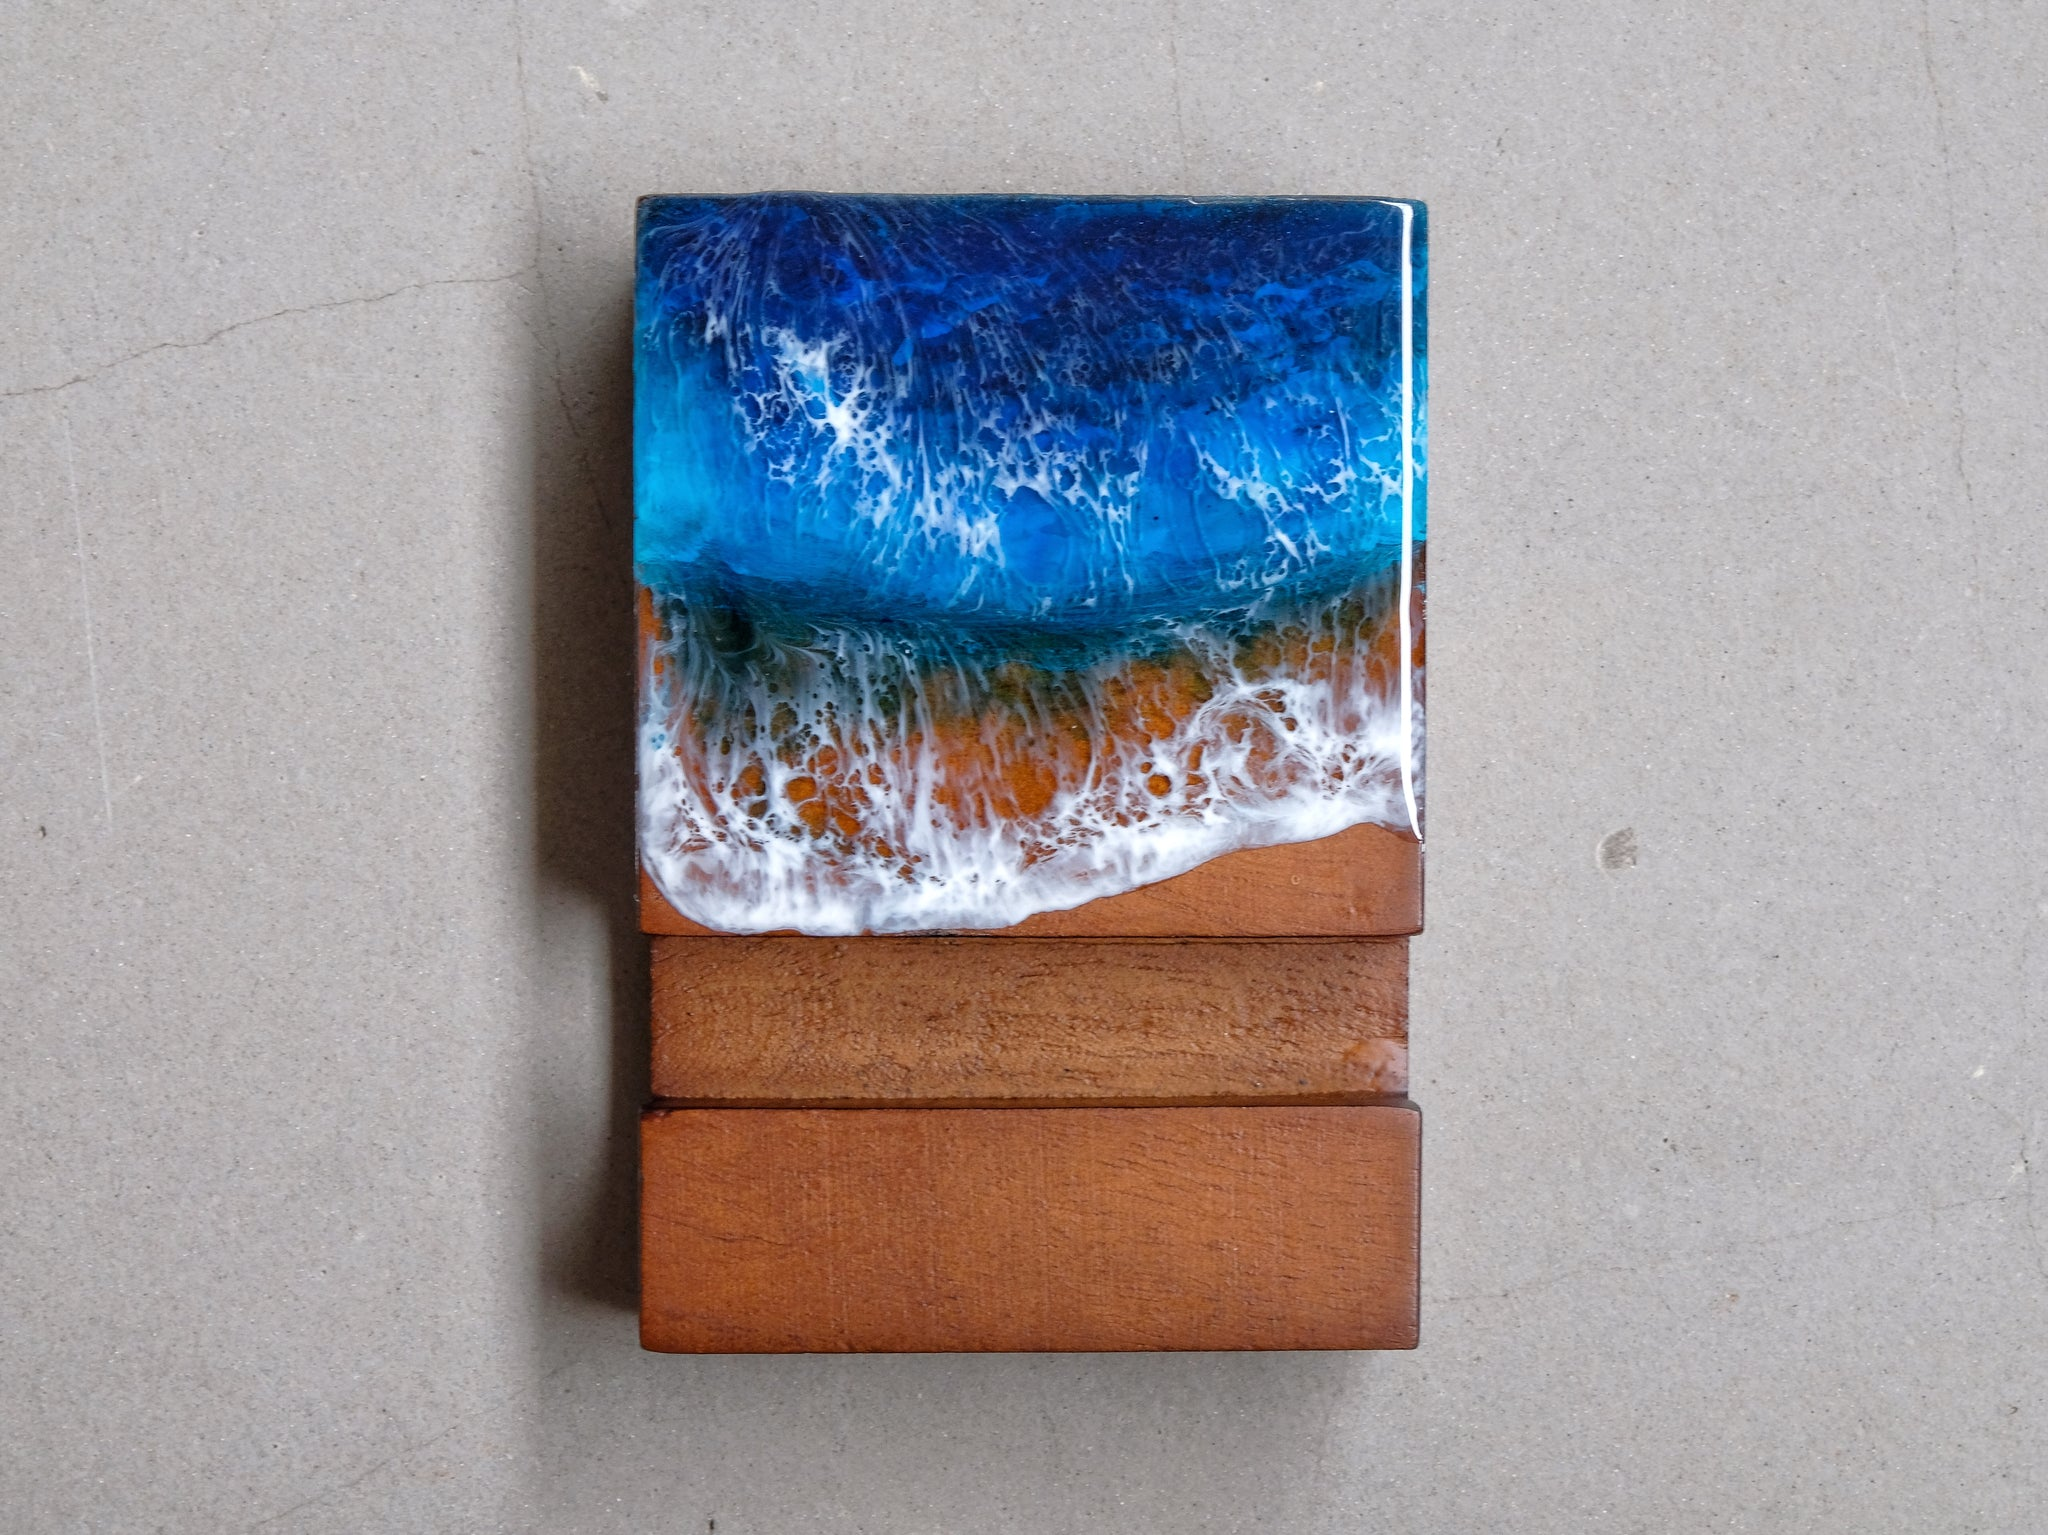 Blue & Turquoise Seascape Wooden Name Card/Phone Holder #2